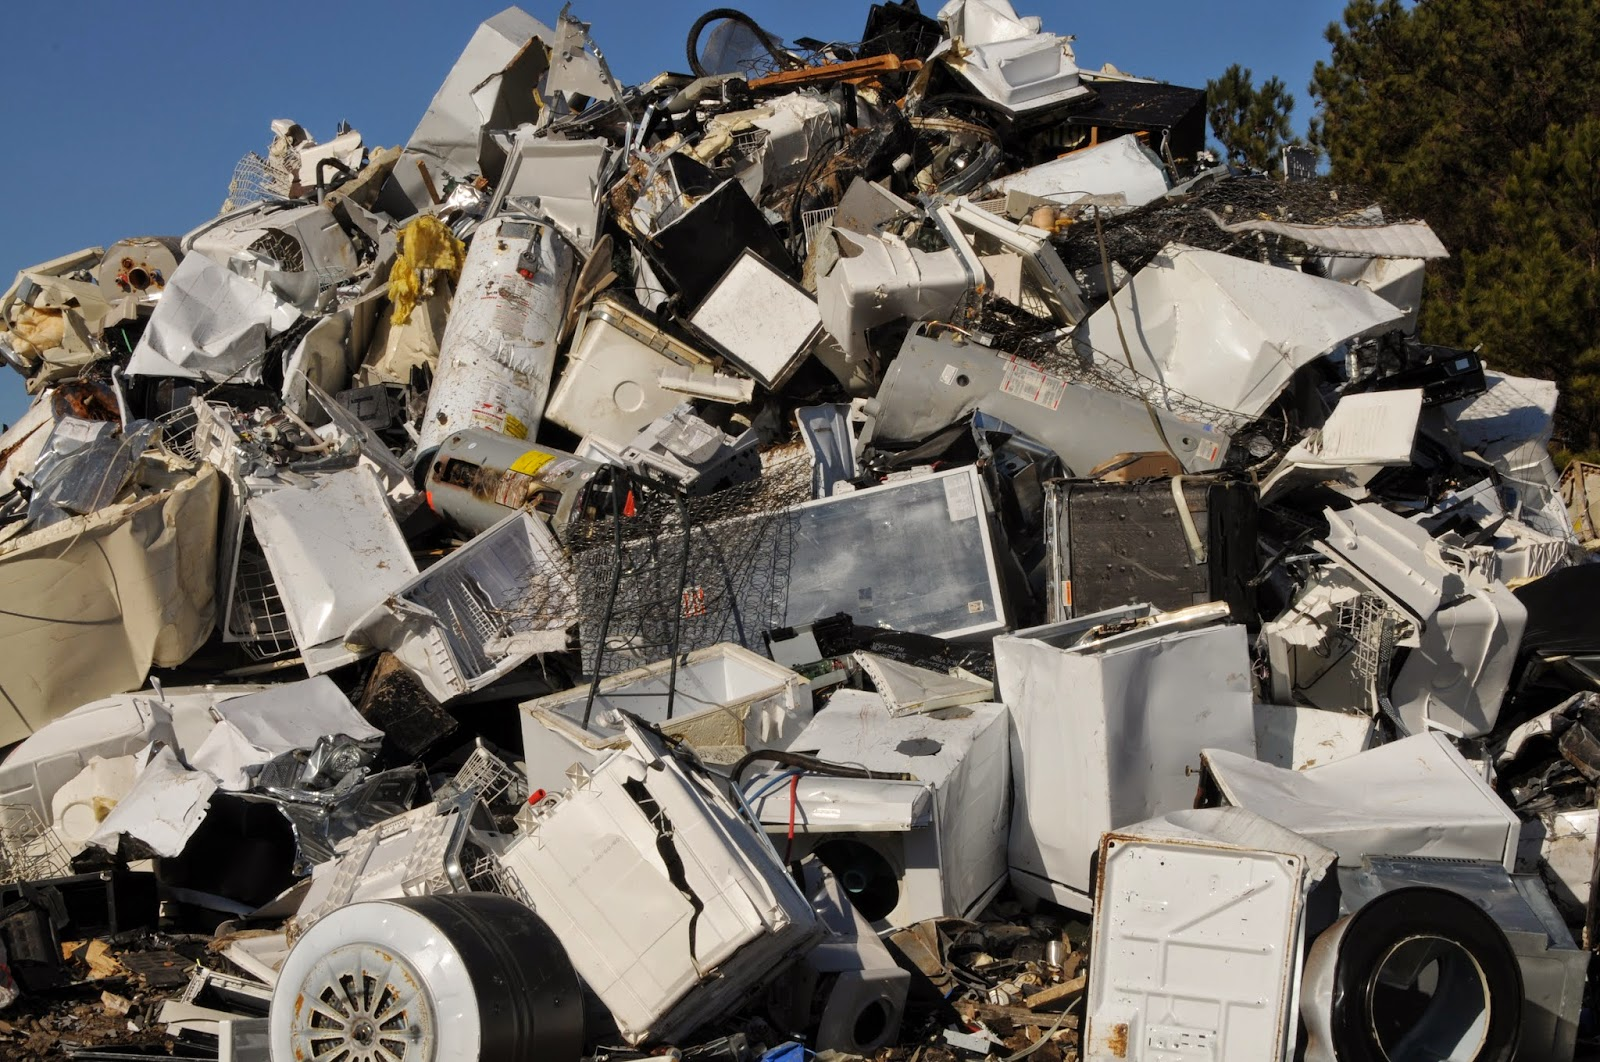 Used Cars In Raleigh Nc >> Scrap Metal, Raleigh, NC, Recycling, Junk Cars, Yards ...